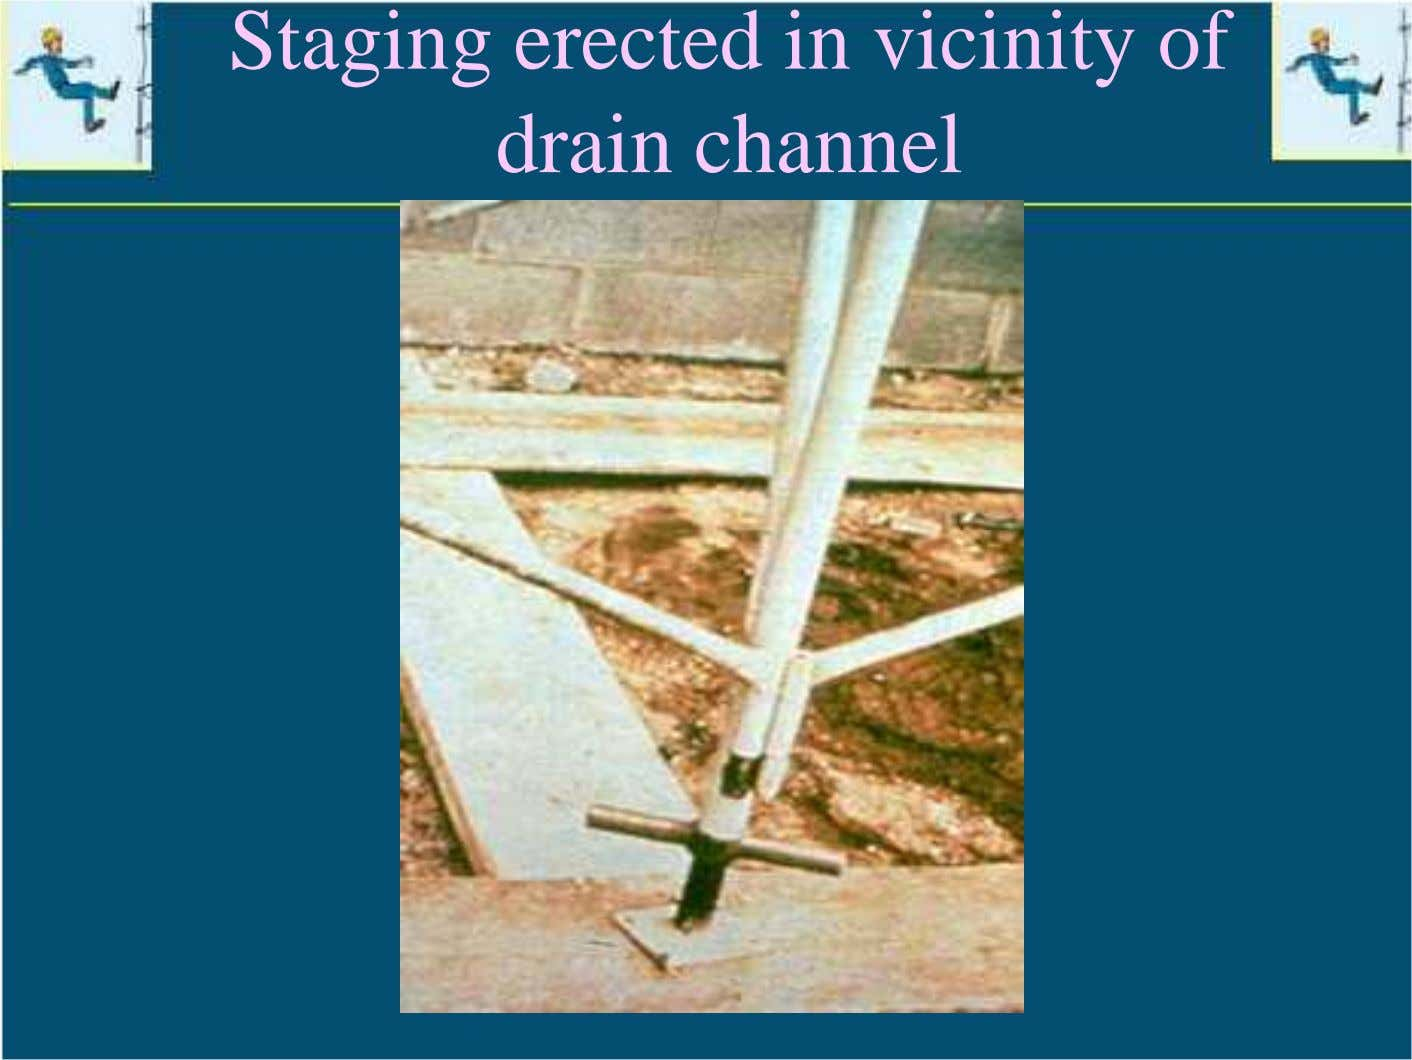 Staging erected in vicinity of drain channel